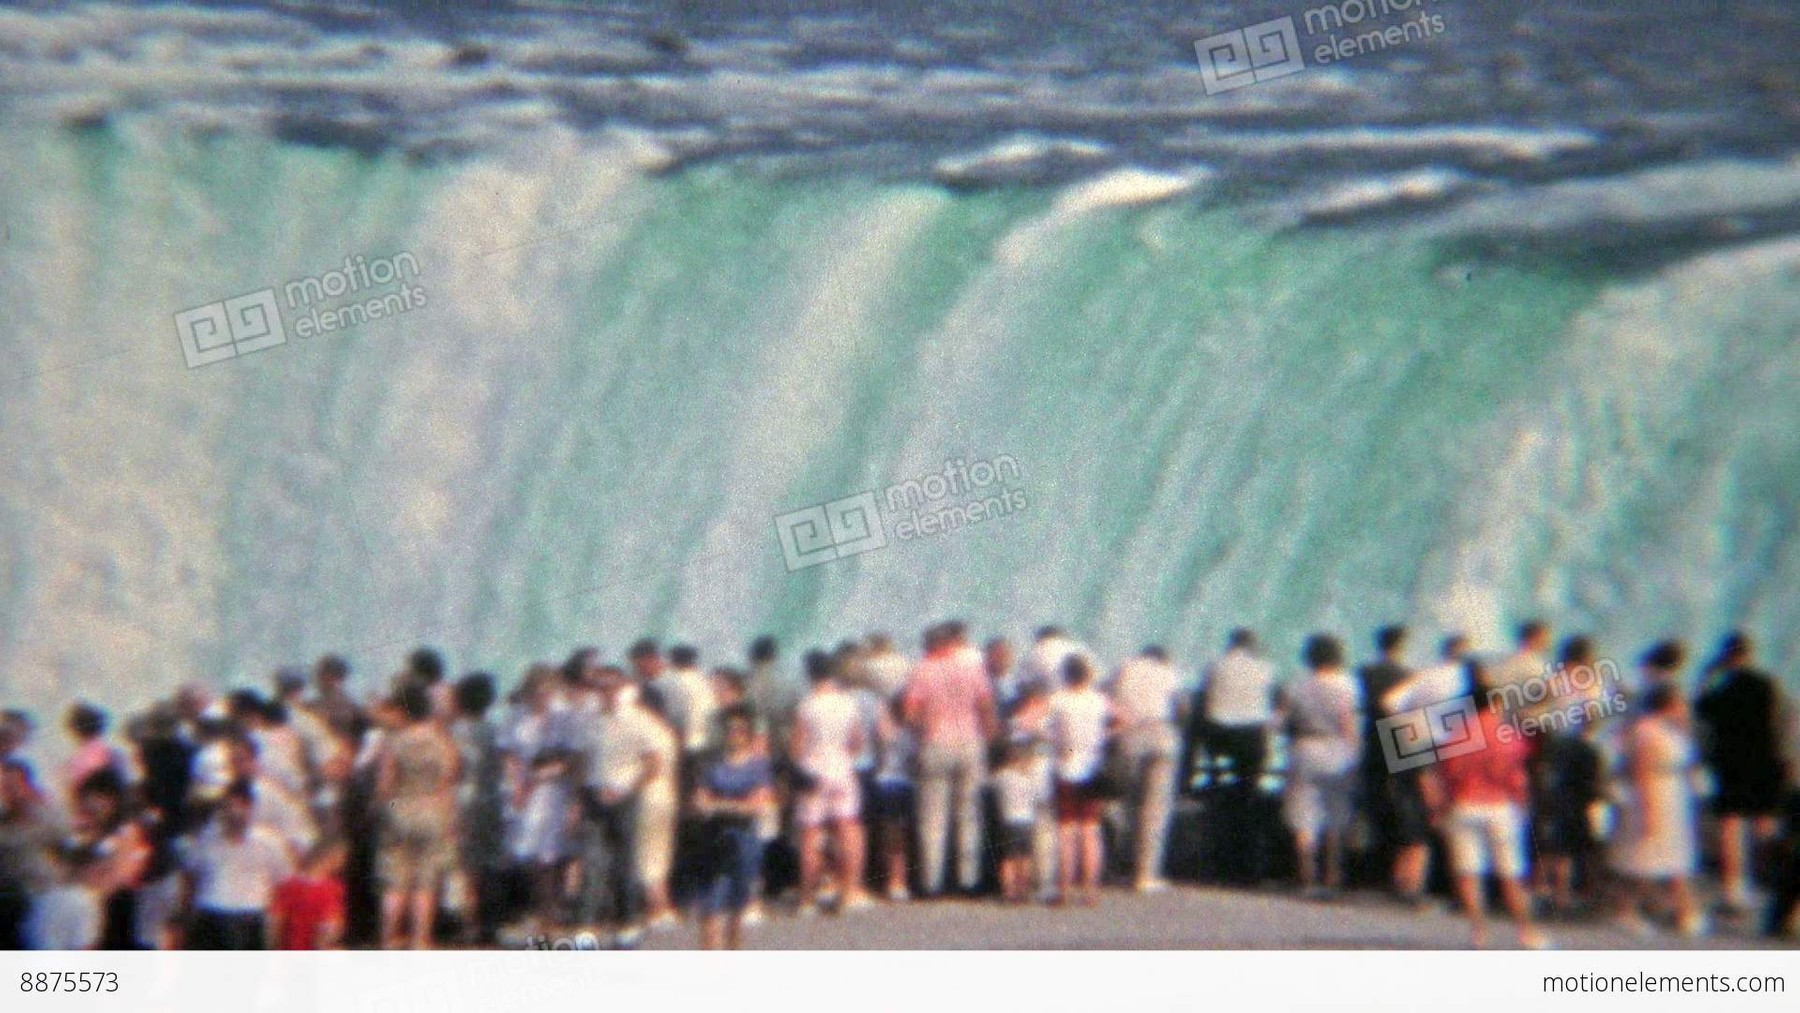 me8875573-crowd-observing-flood-water-levels-niagara-falls-united-states-a0175.jpg